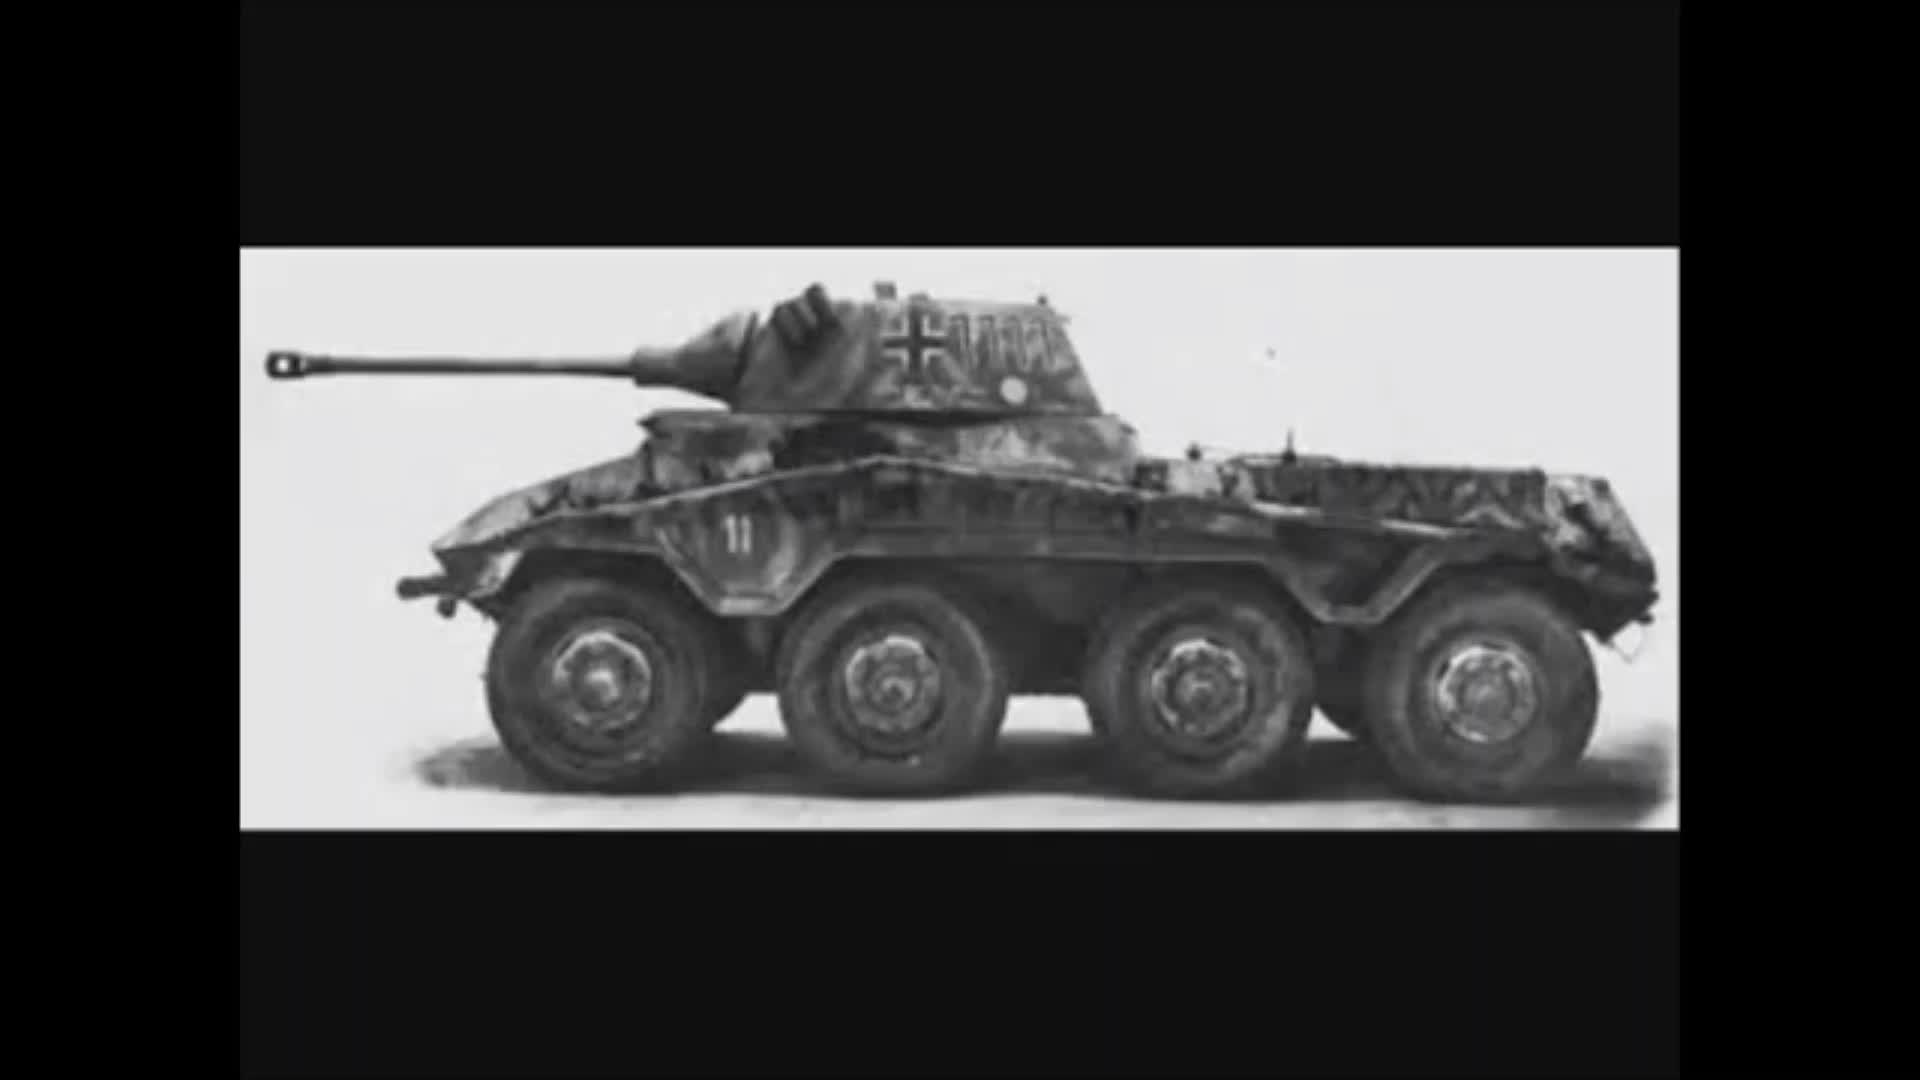 German armored reconnaissance vehicle build for war, Sd.Kfz.